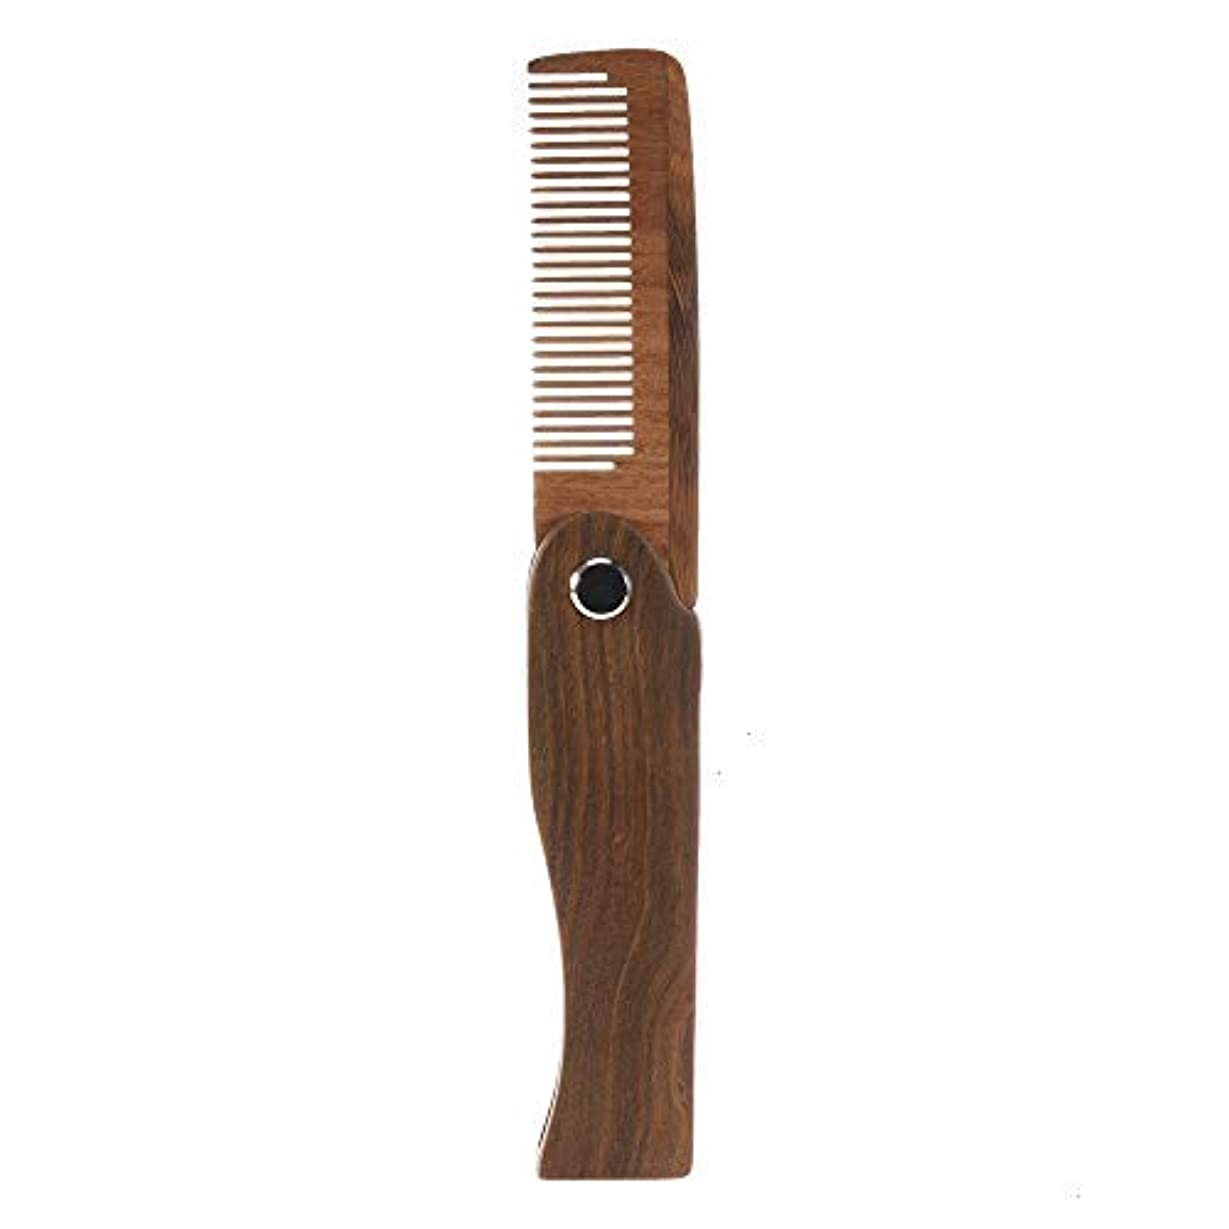 買い物に行くバスケットボール位置するFeeko Folding Wooden Comb, 1 PC Pocket Size Hair Beard Fold Wooden Comb Durable Anti-Static Sandalwood Comb Every...